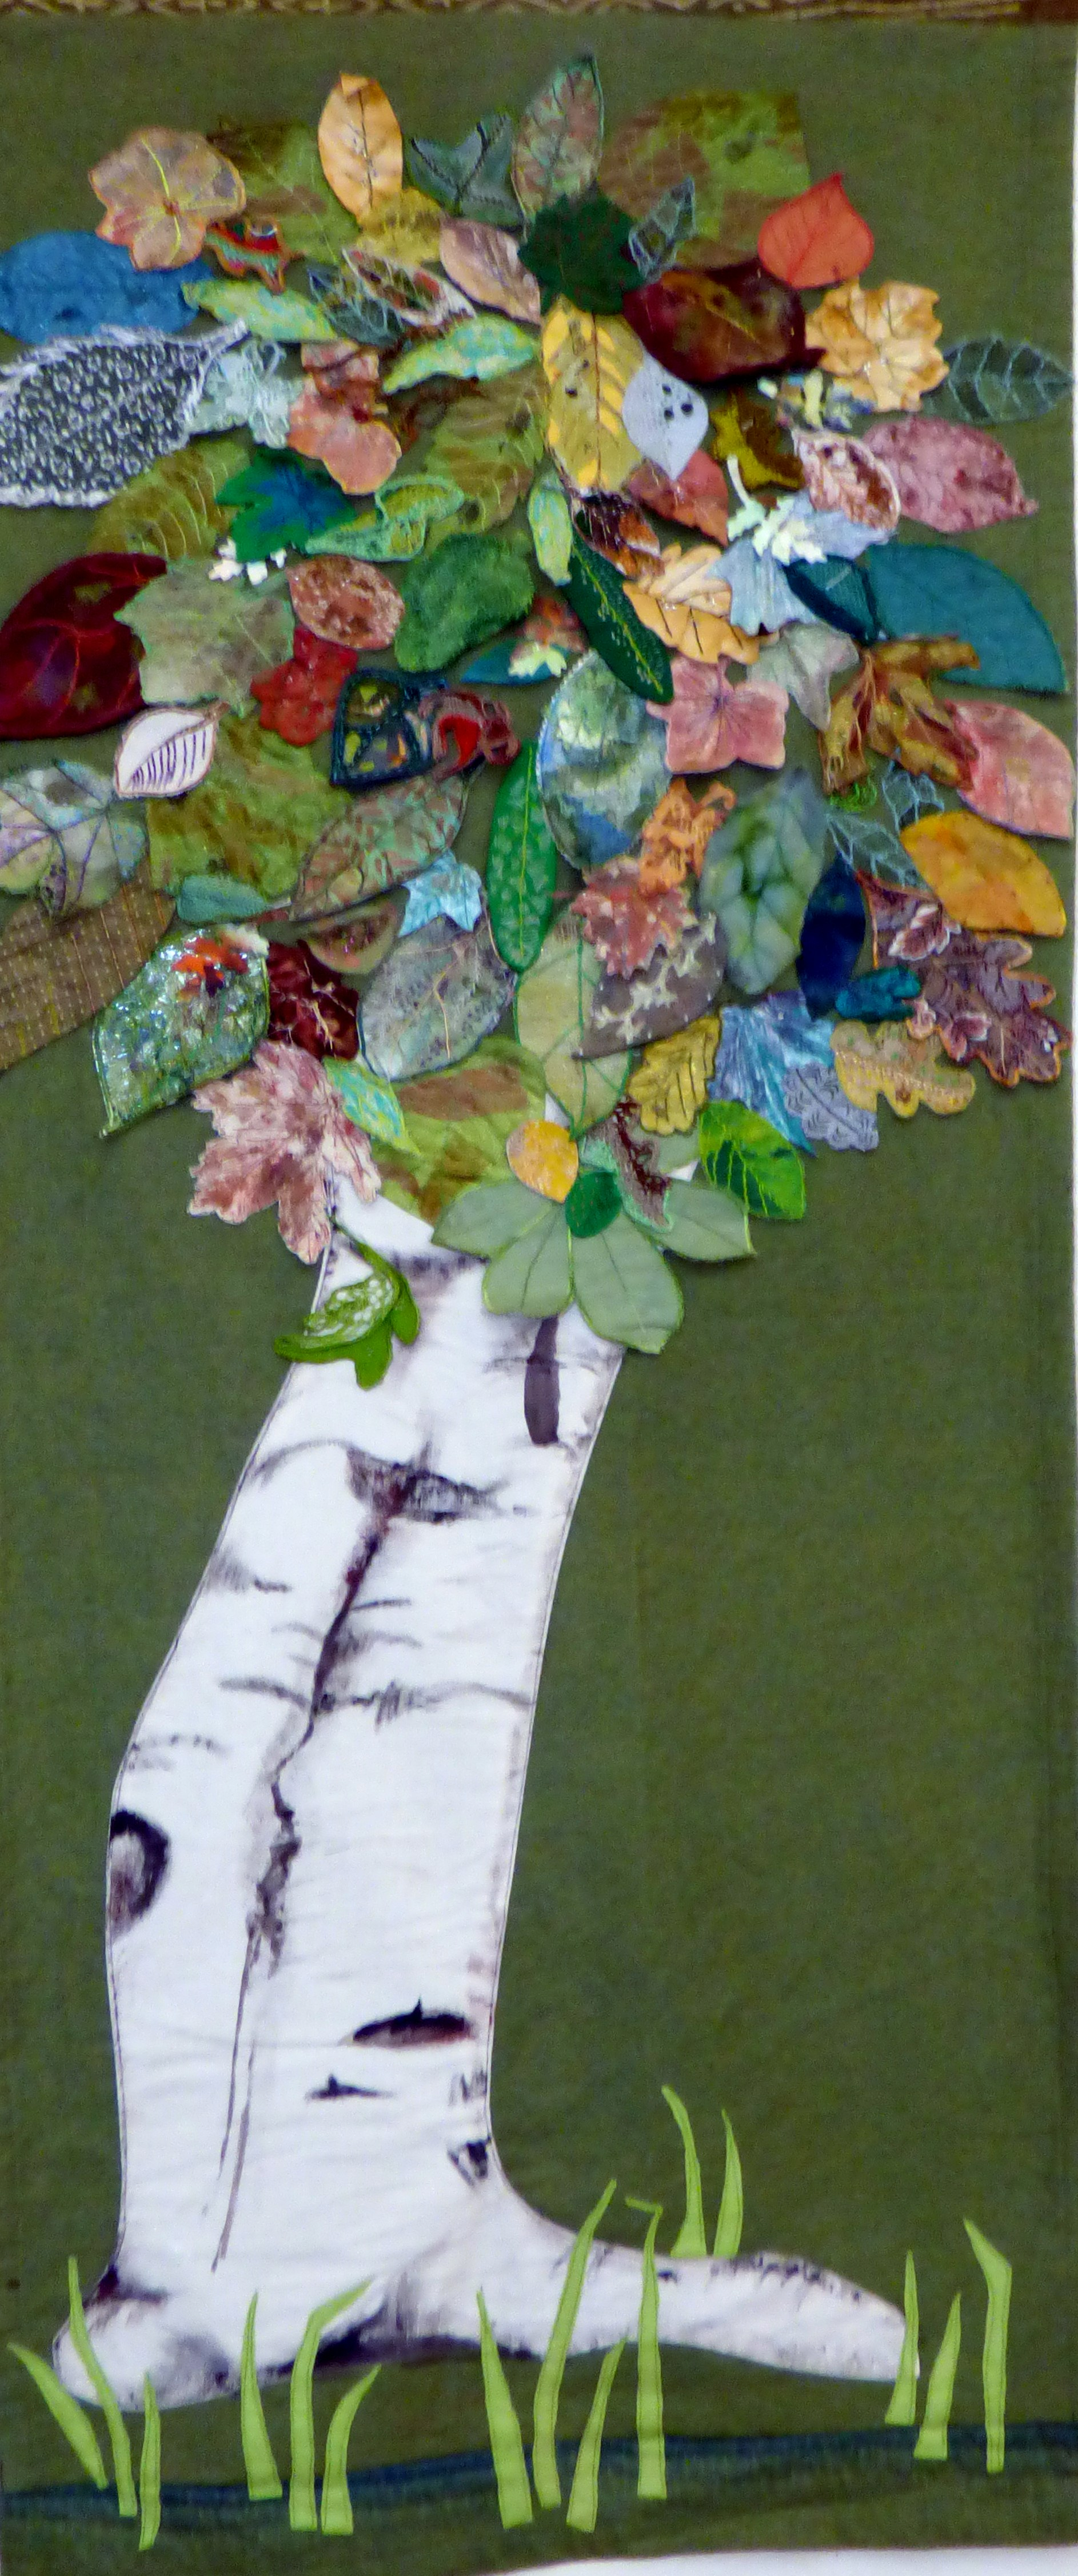 TREES, Wirral EG group work, two hangings of stitched leaves